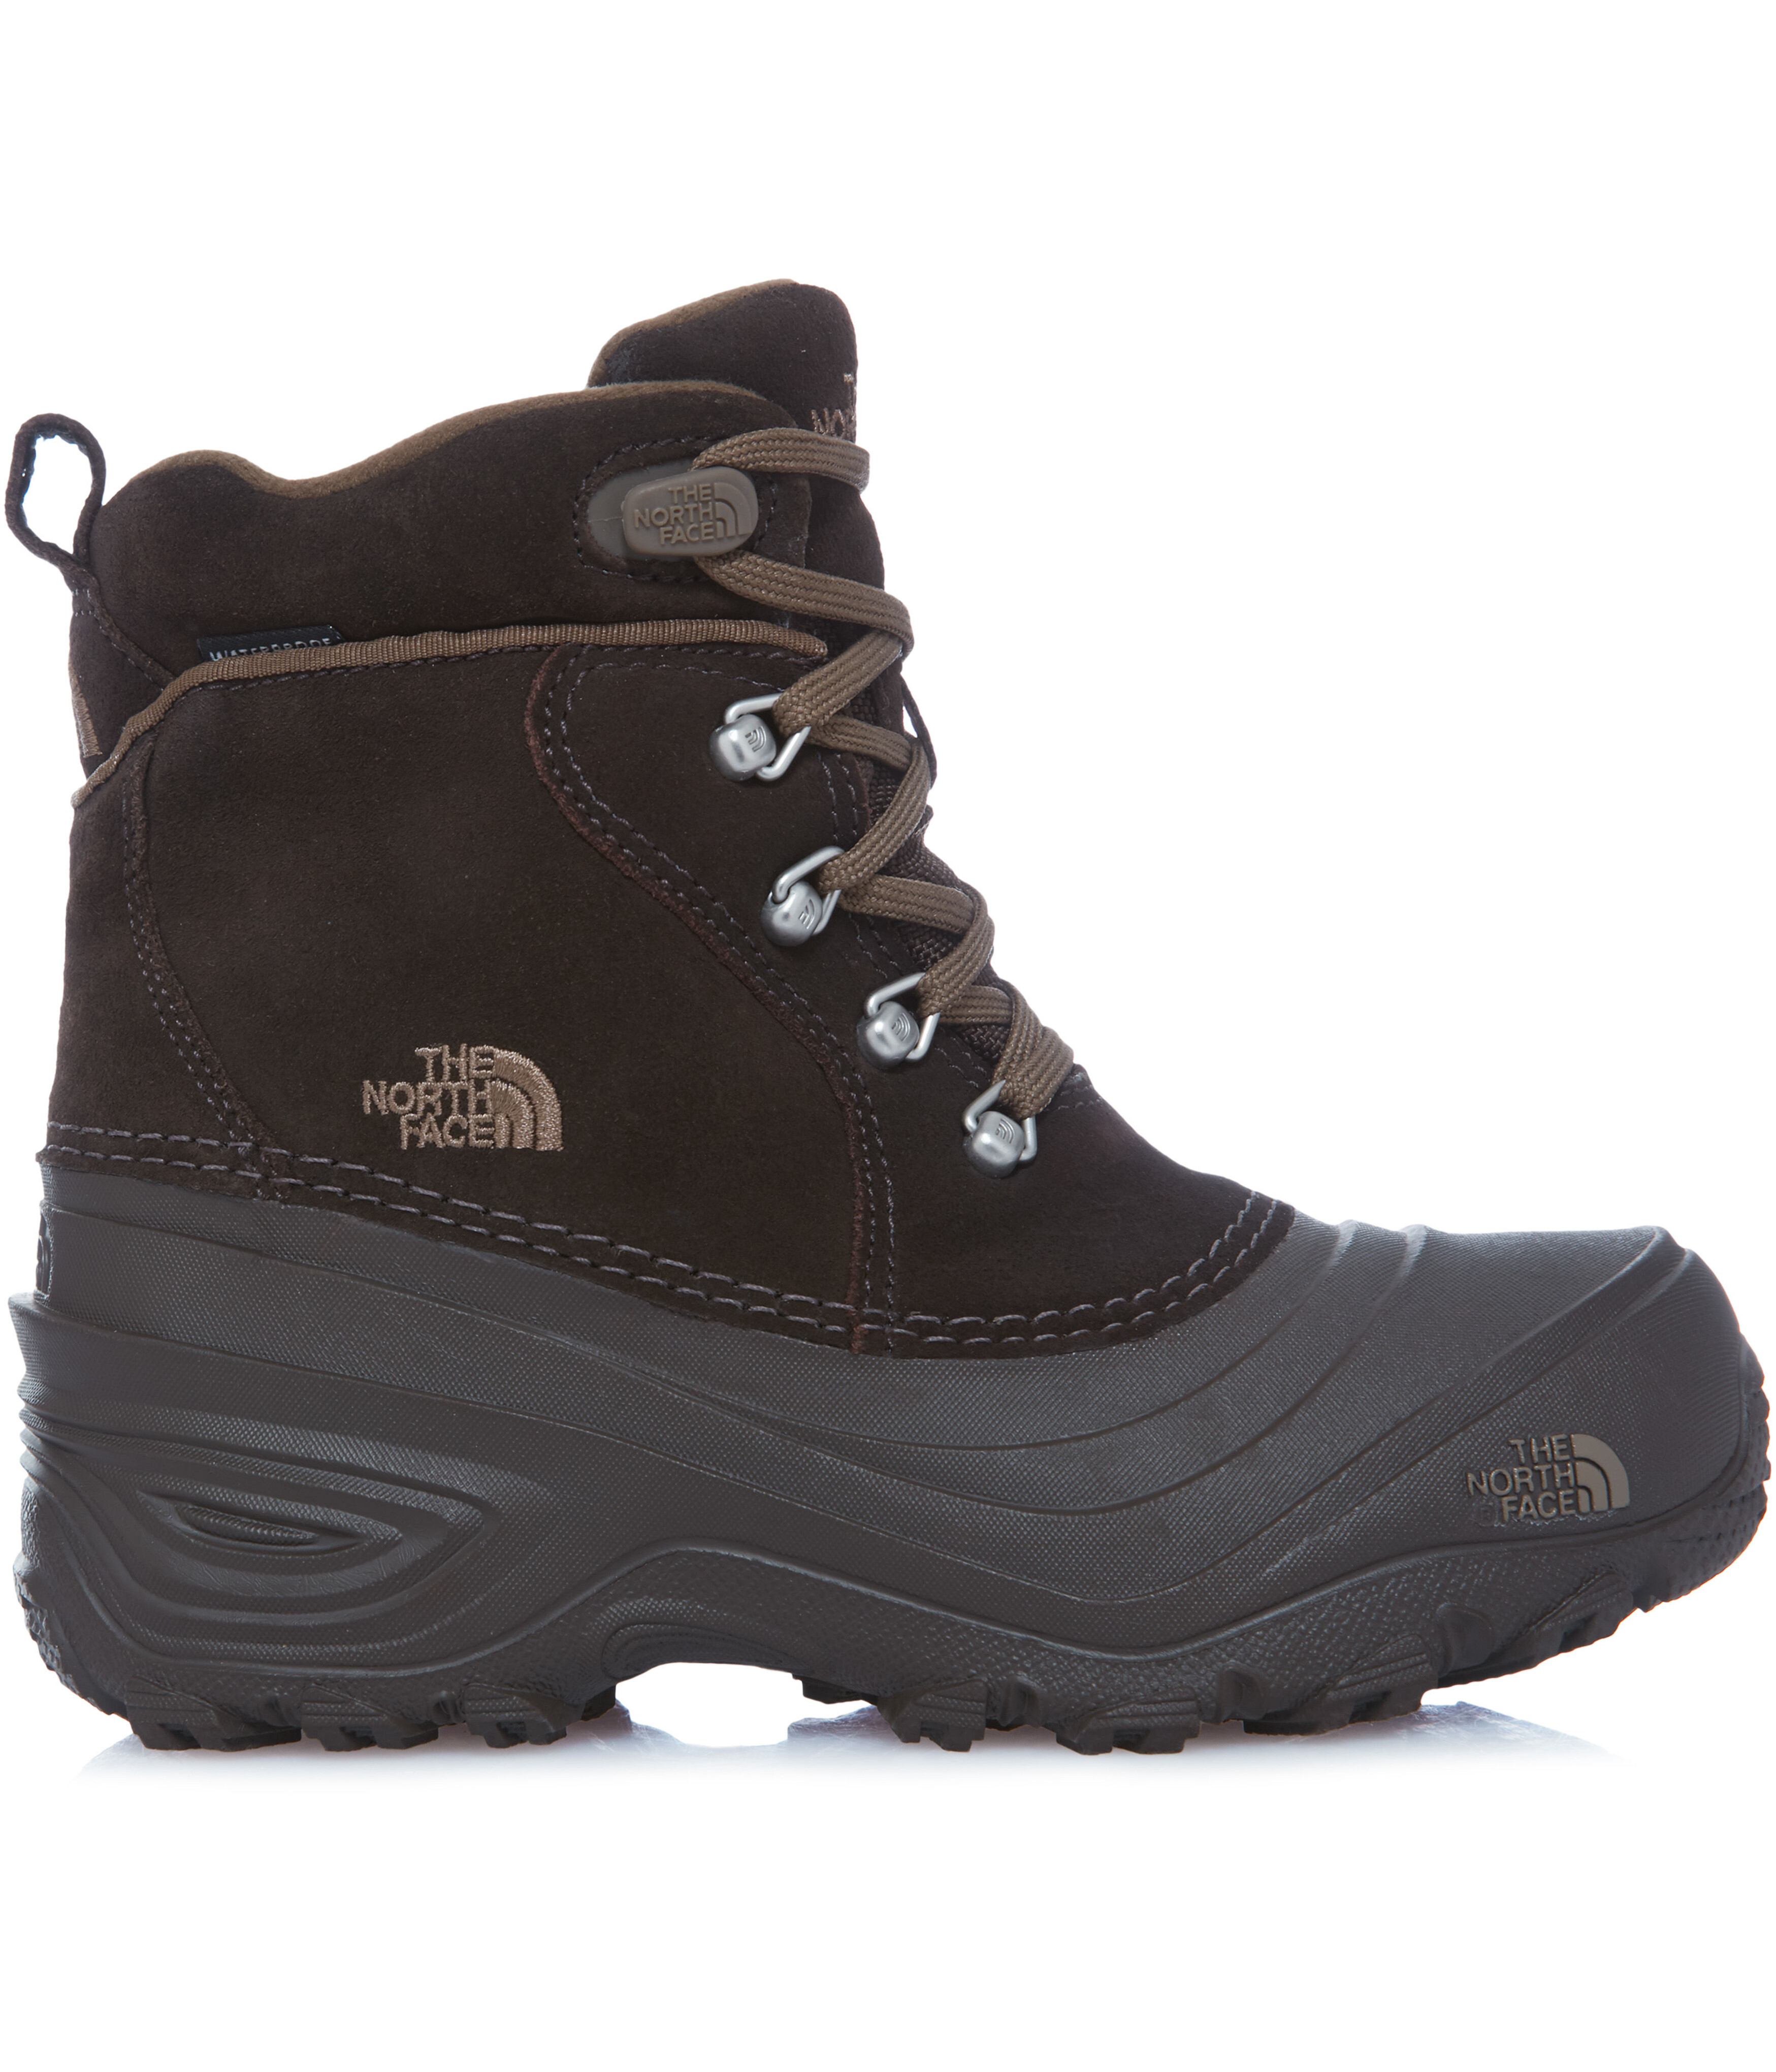 590743d69 The North Face Chilkat Lace II Boots Kids demitasse brown/cub brown